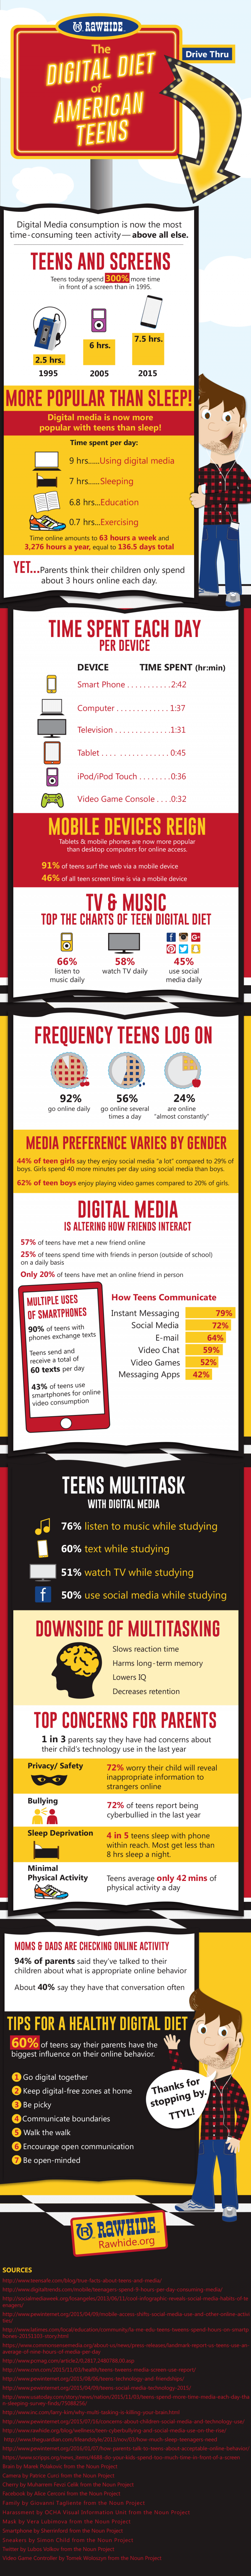 The Digital Diet of the American Teen Infographic